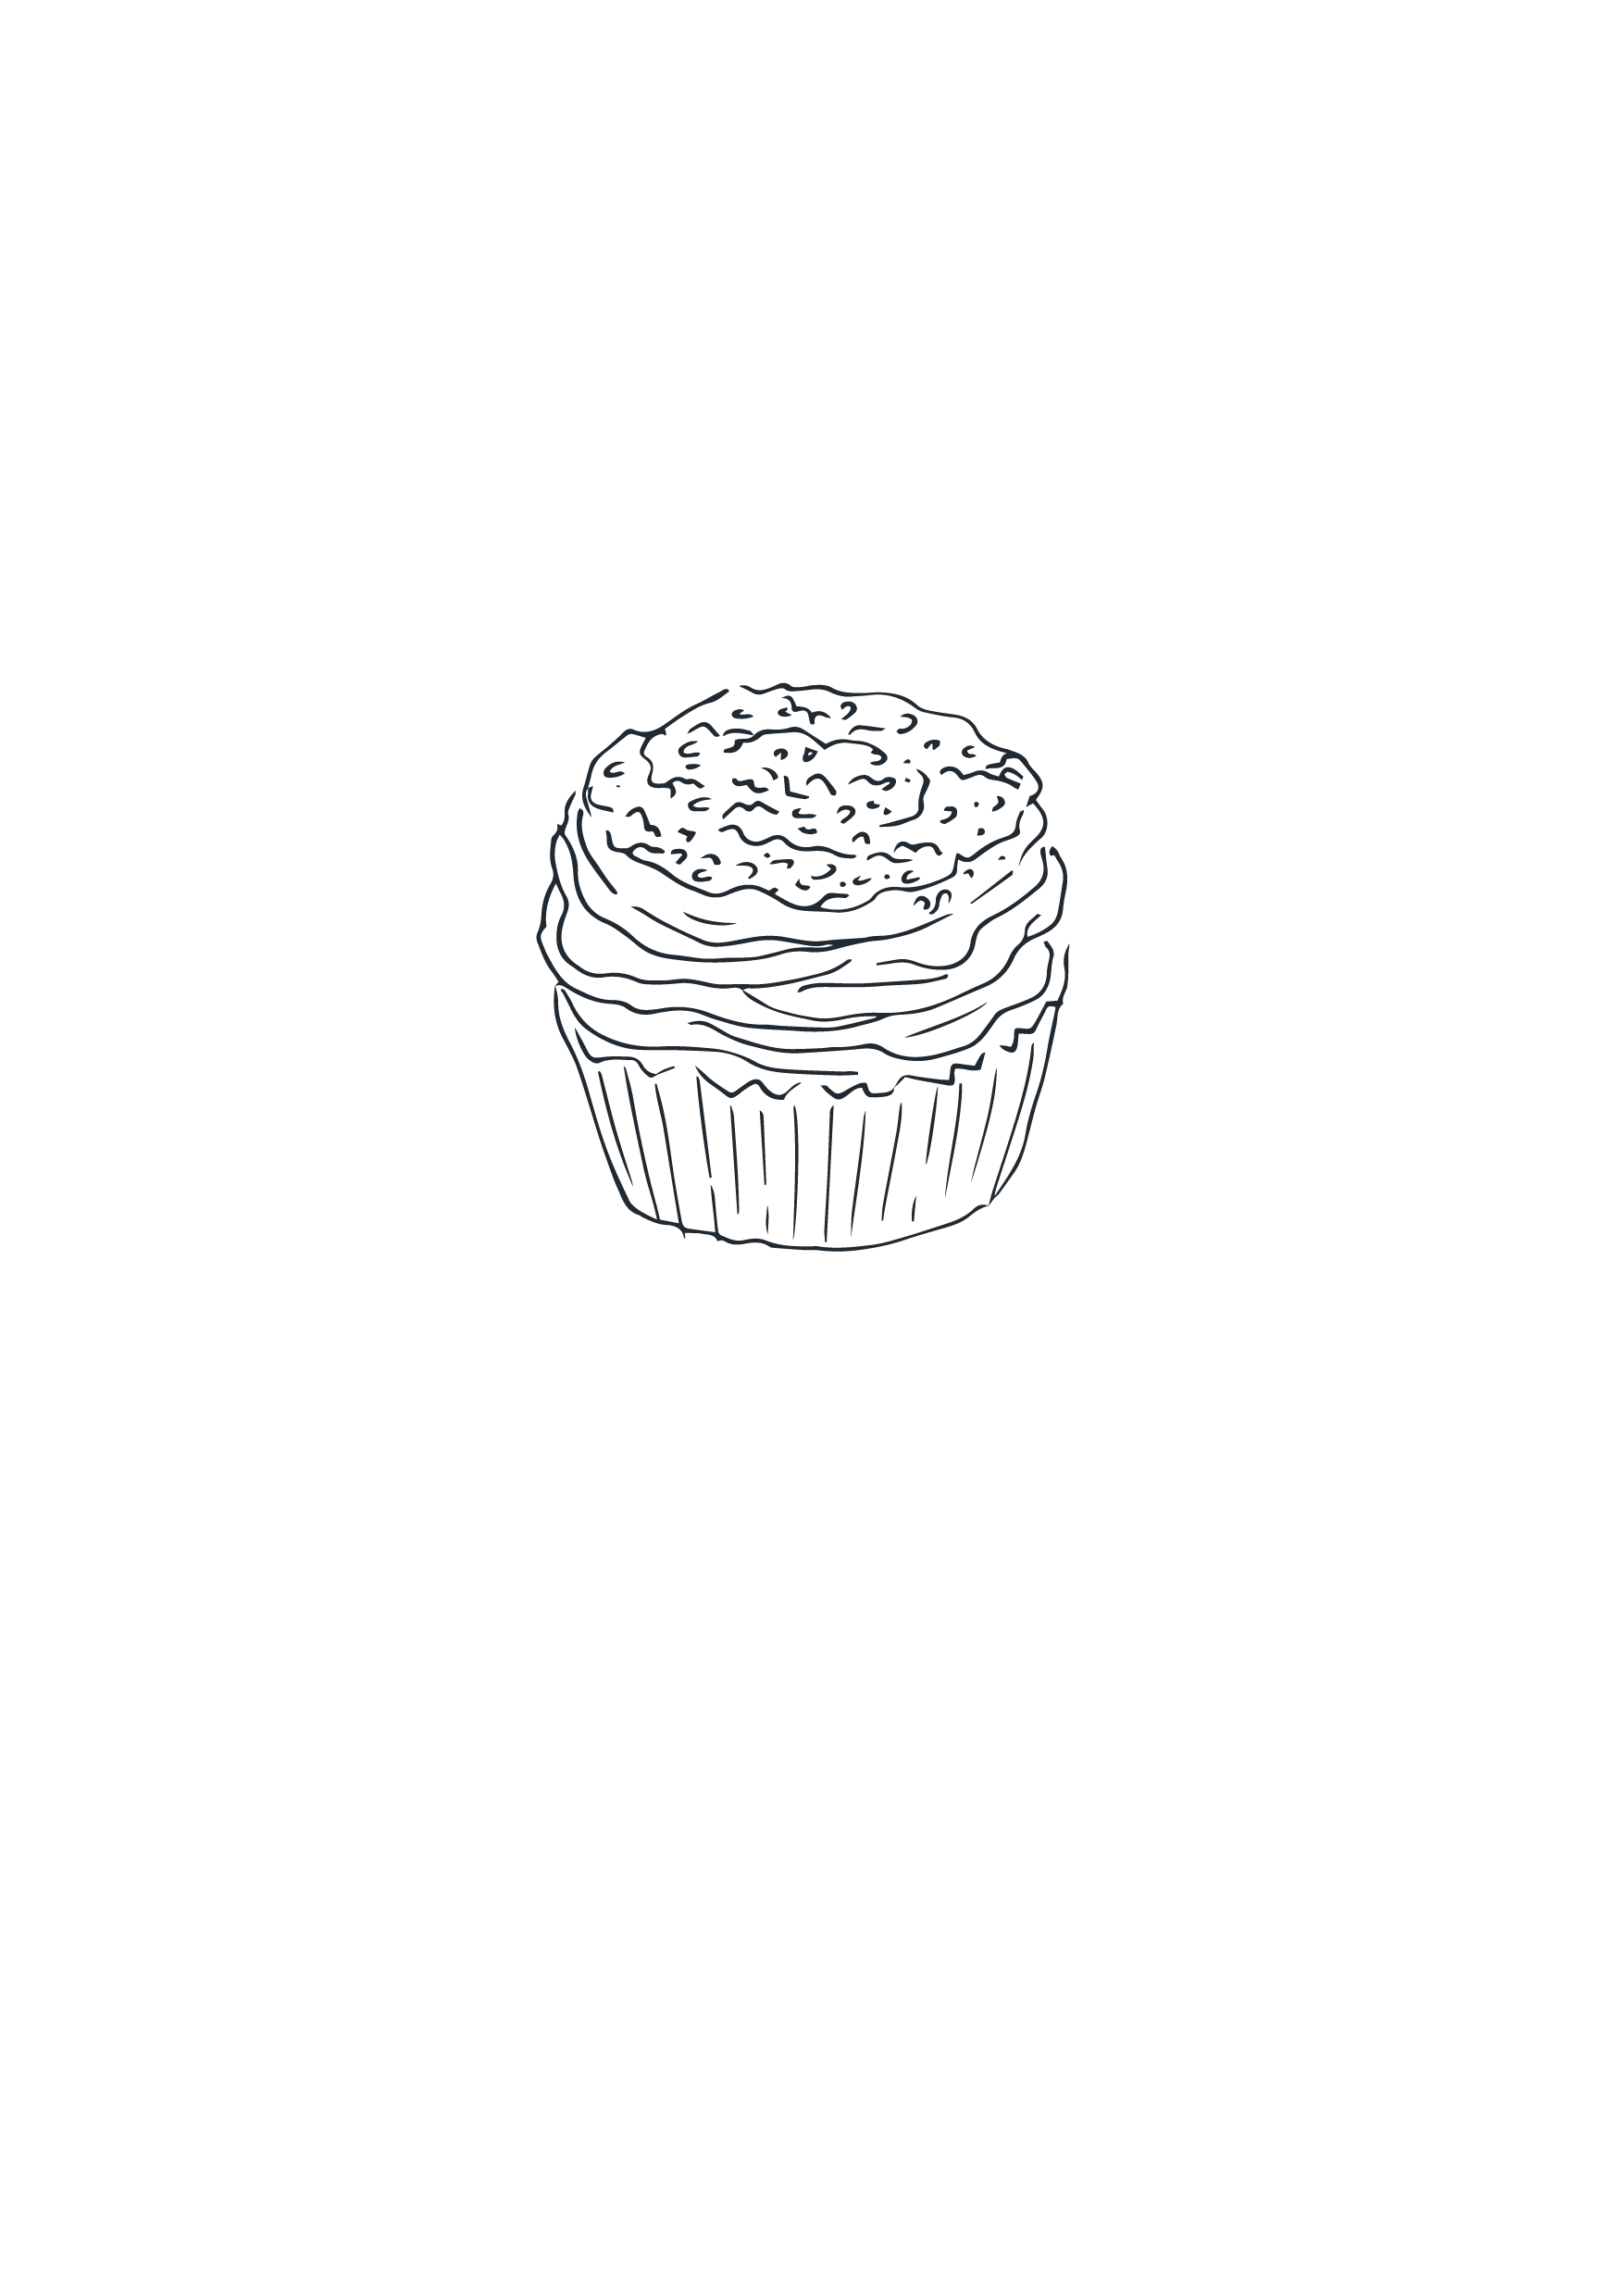 Pophams Bakery_Illustrations_A5_Final-06.png